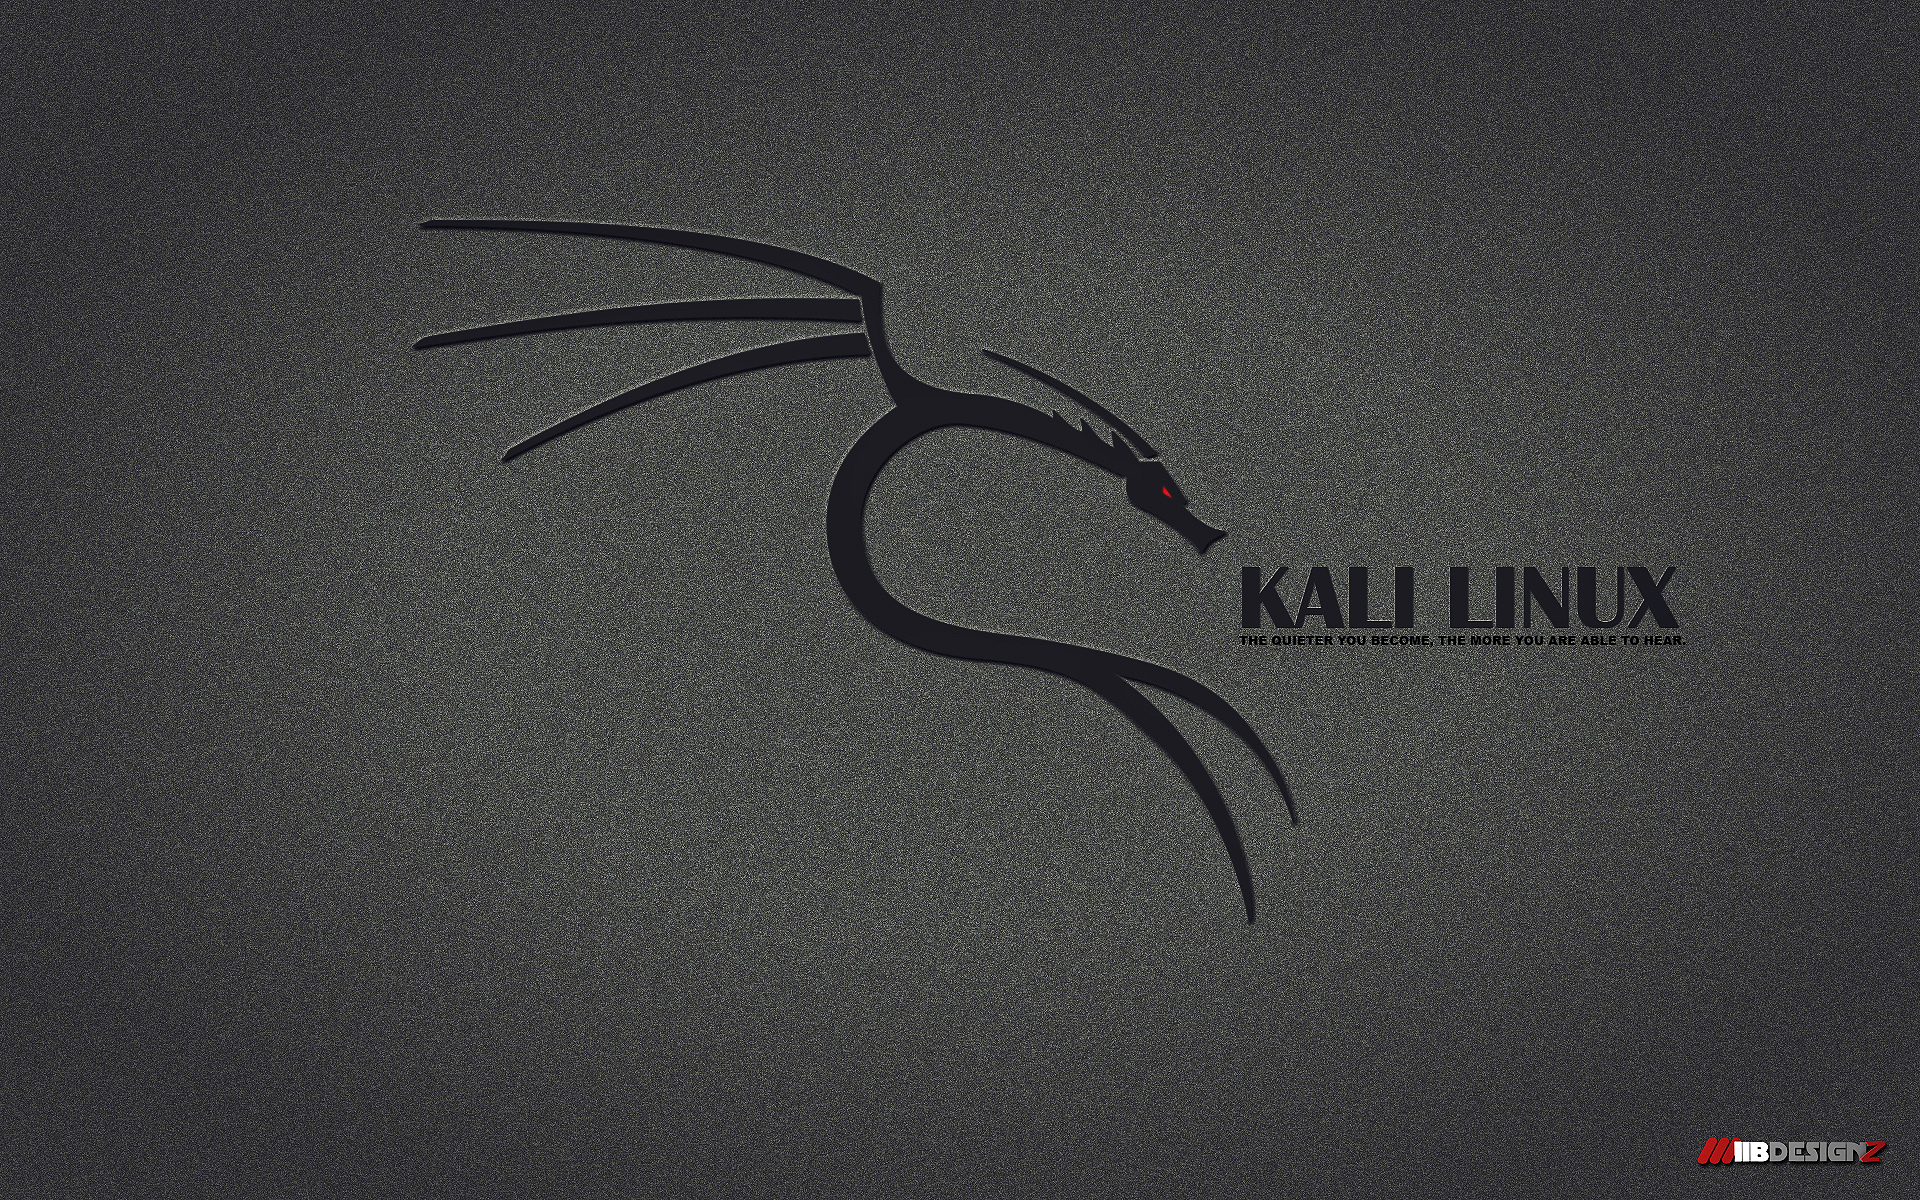 kali linux wallpaper hd - photo #15